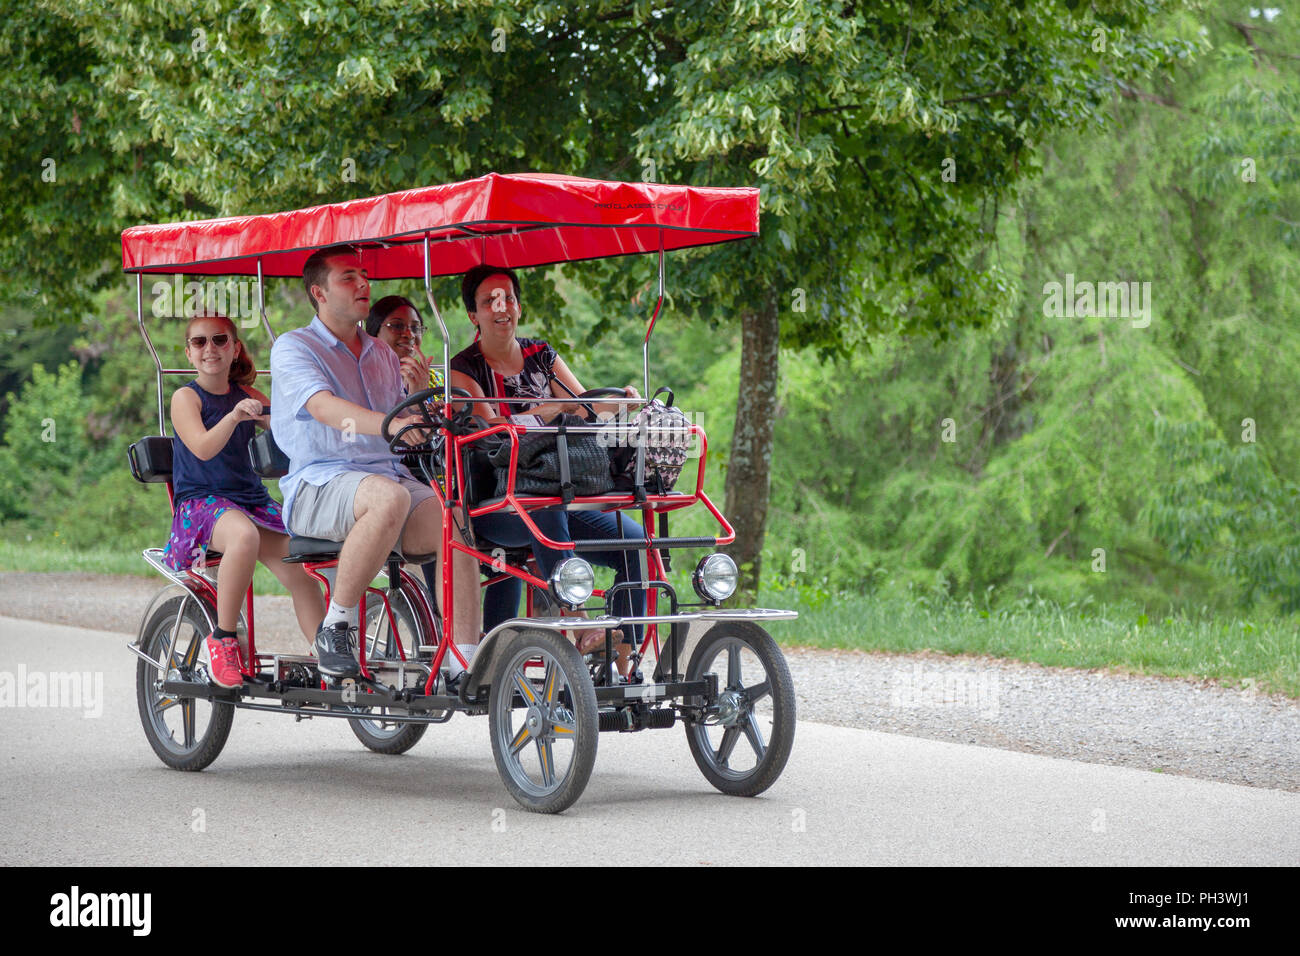 On the ramparts at Lucca (Tuscany - Italy),  a tourist family having a drive in a four-wheeled pedal car under the shade of hundred-year old trees. - Stock Image